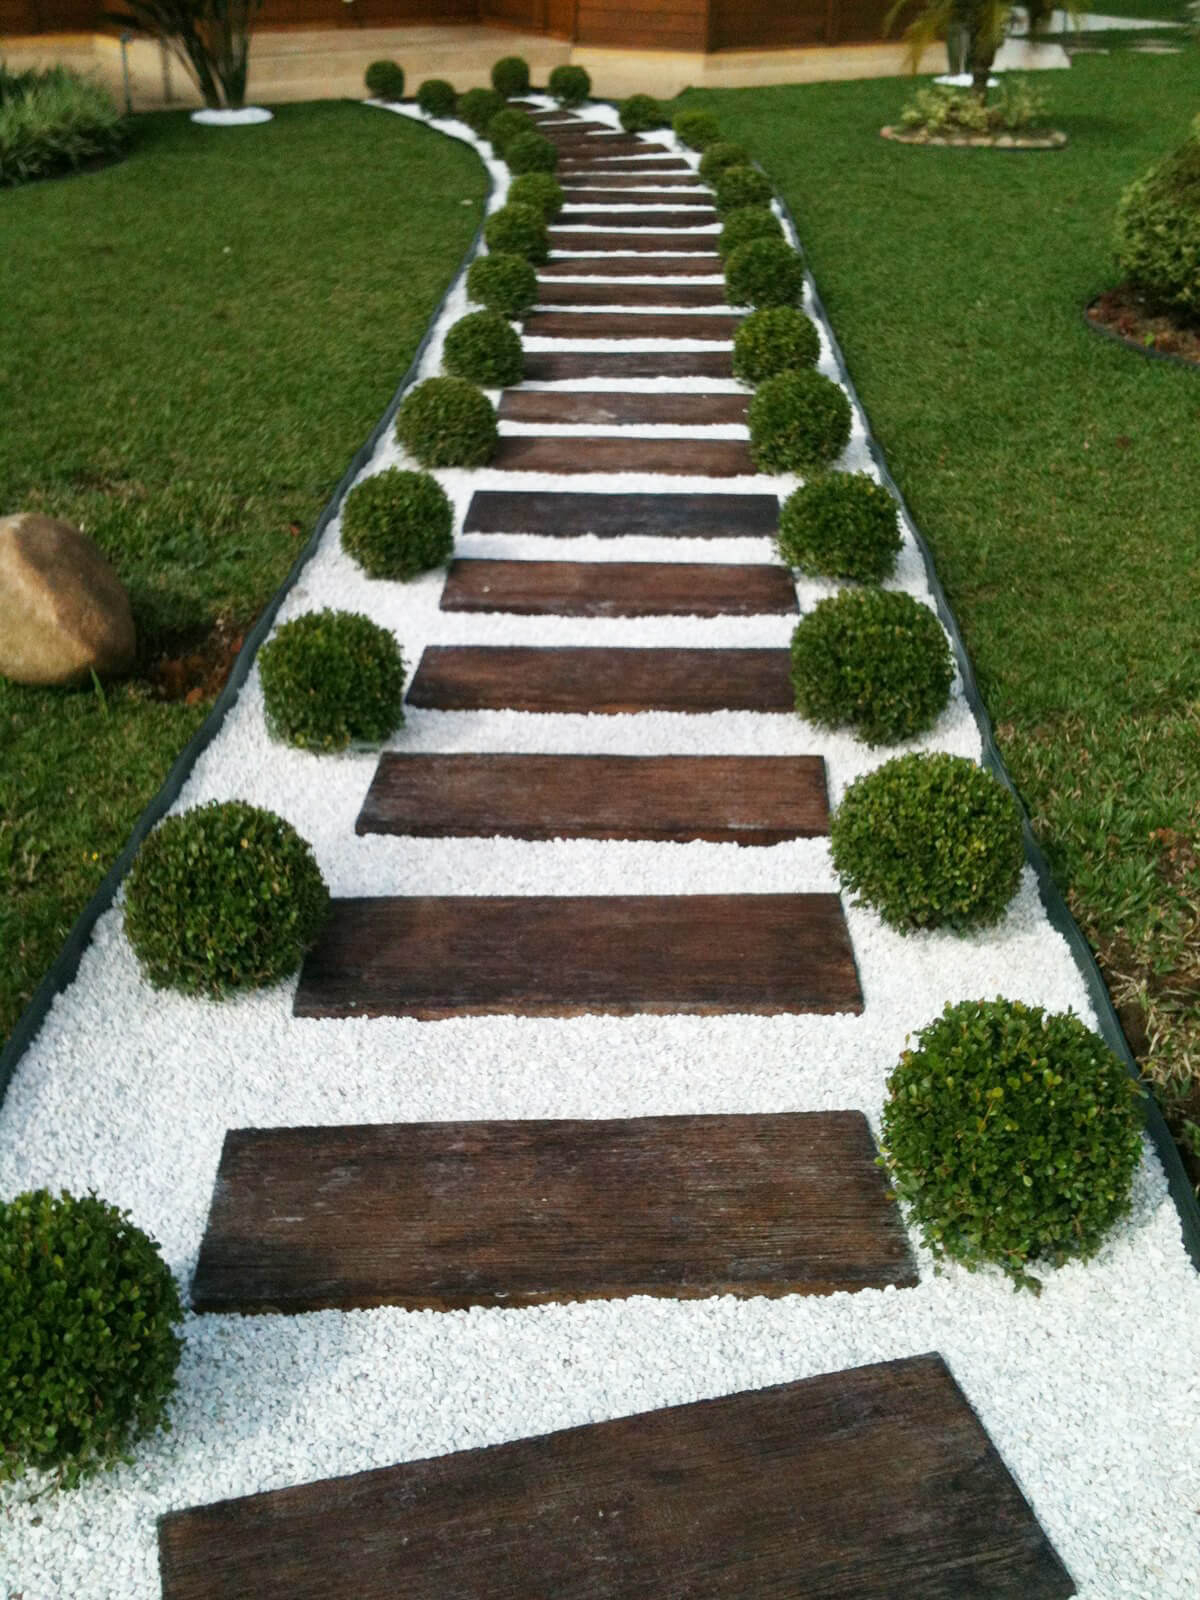 25 Best Garden Path And Walkway Ideas And Designs For 2019 for Backyard Pathway Ideas